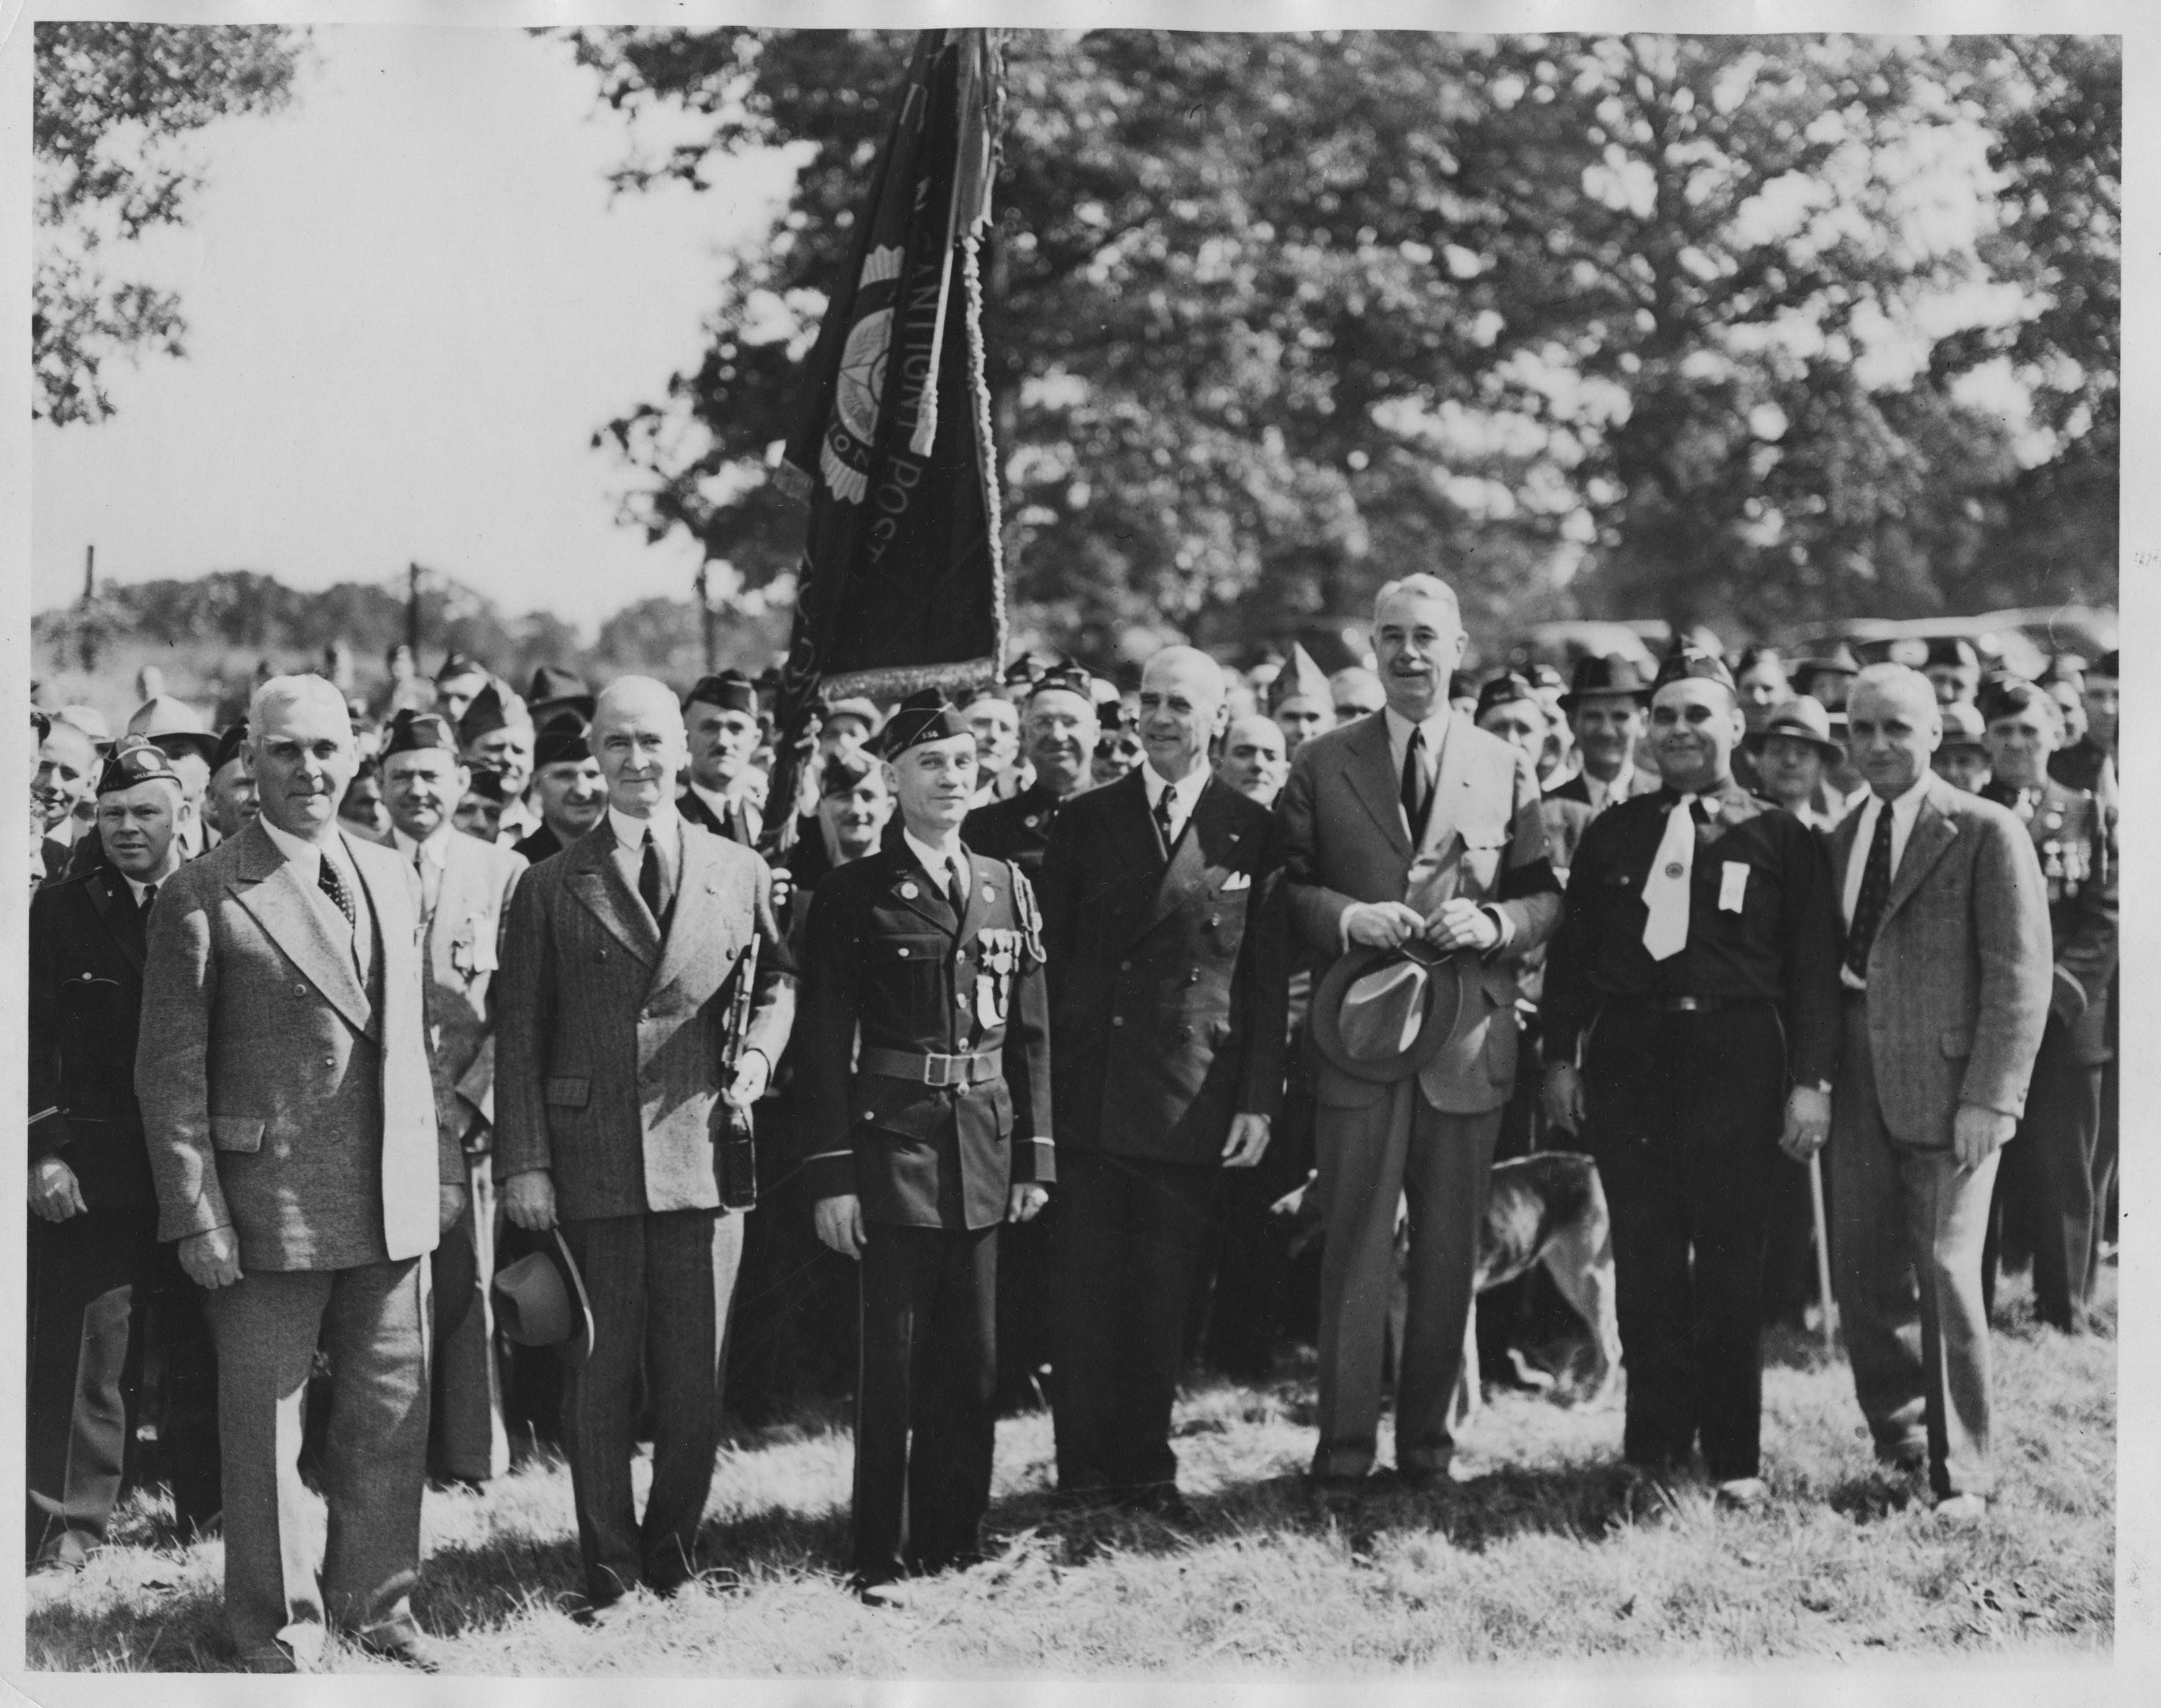 Colonel McCormick, third from right, frequently invited veterans to Cantigny for reunions. Guests would ride the train to Winfield and then march two miles south to the Wheaton estate.